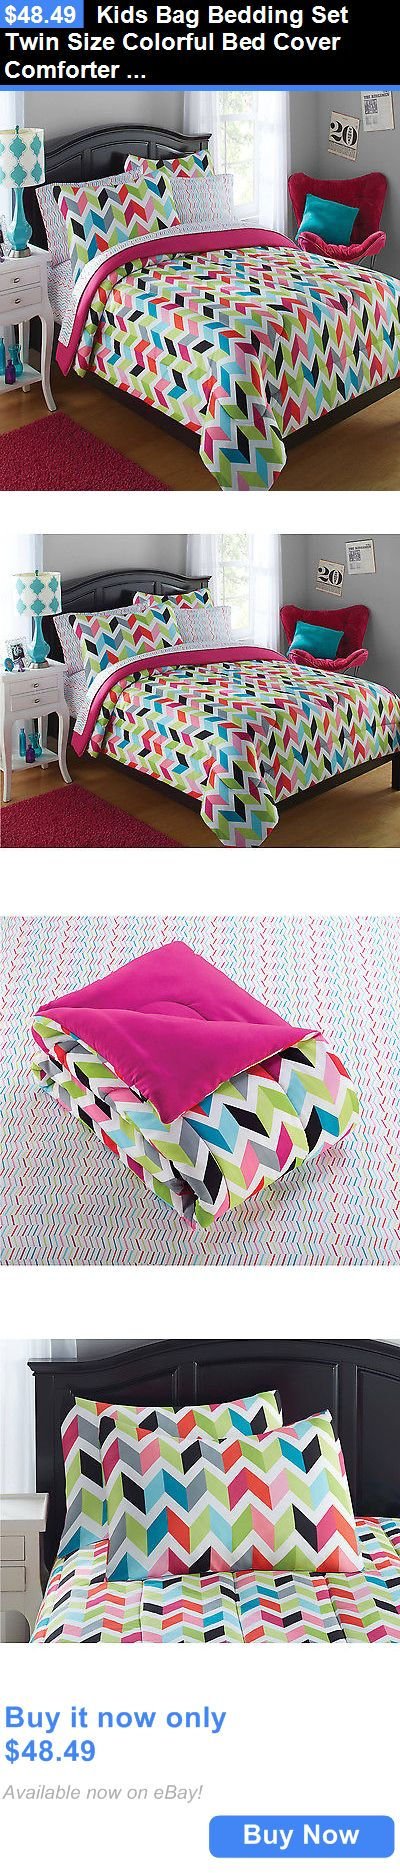 Kids Bedding: Kids Bag Bedding Set Twin Size Colorful Bed Cover Comforter Sheet Teen Bedroom BUY IT NOW ONLY: $48.49